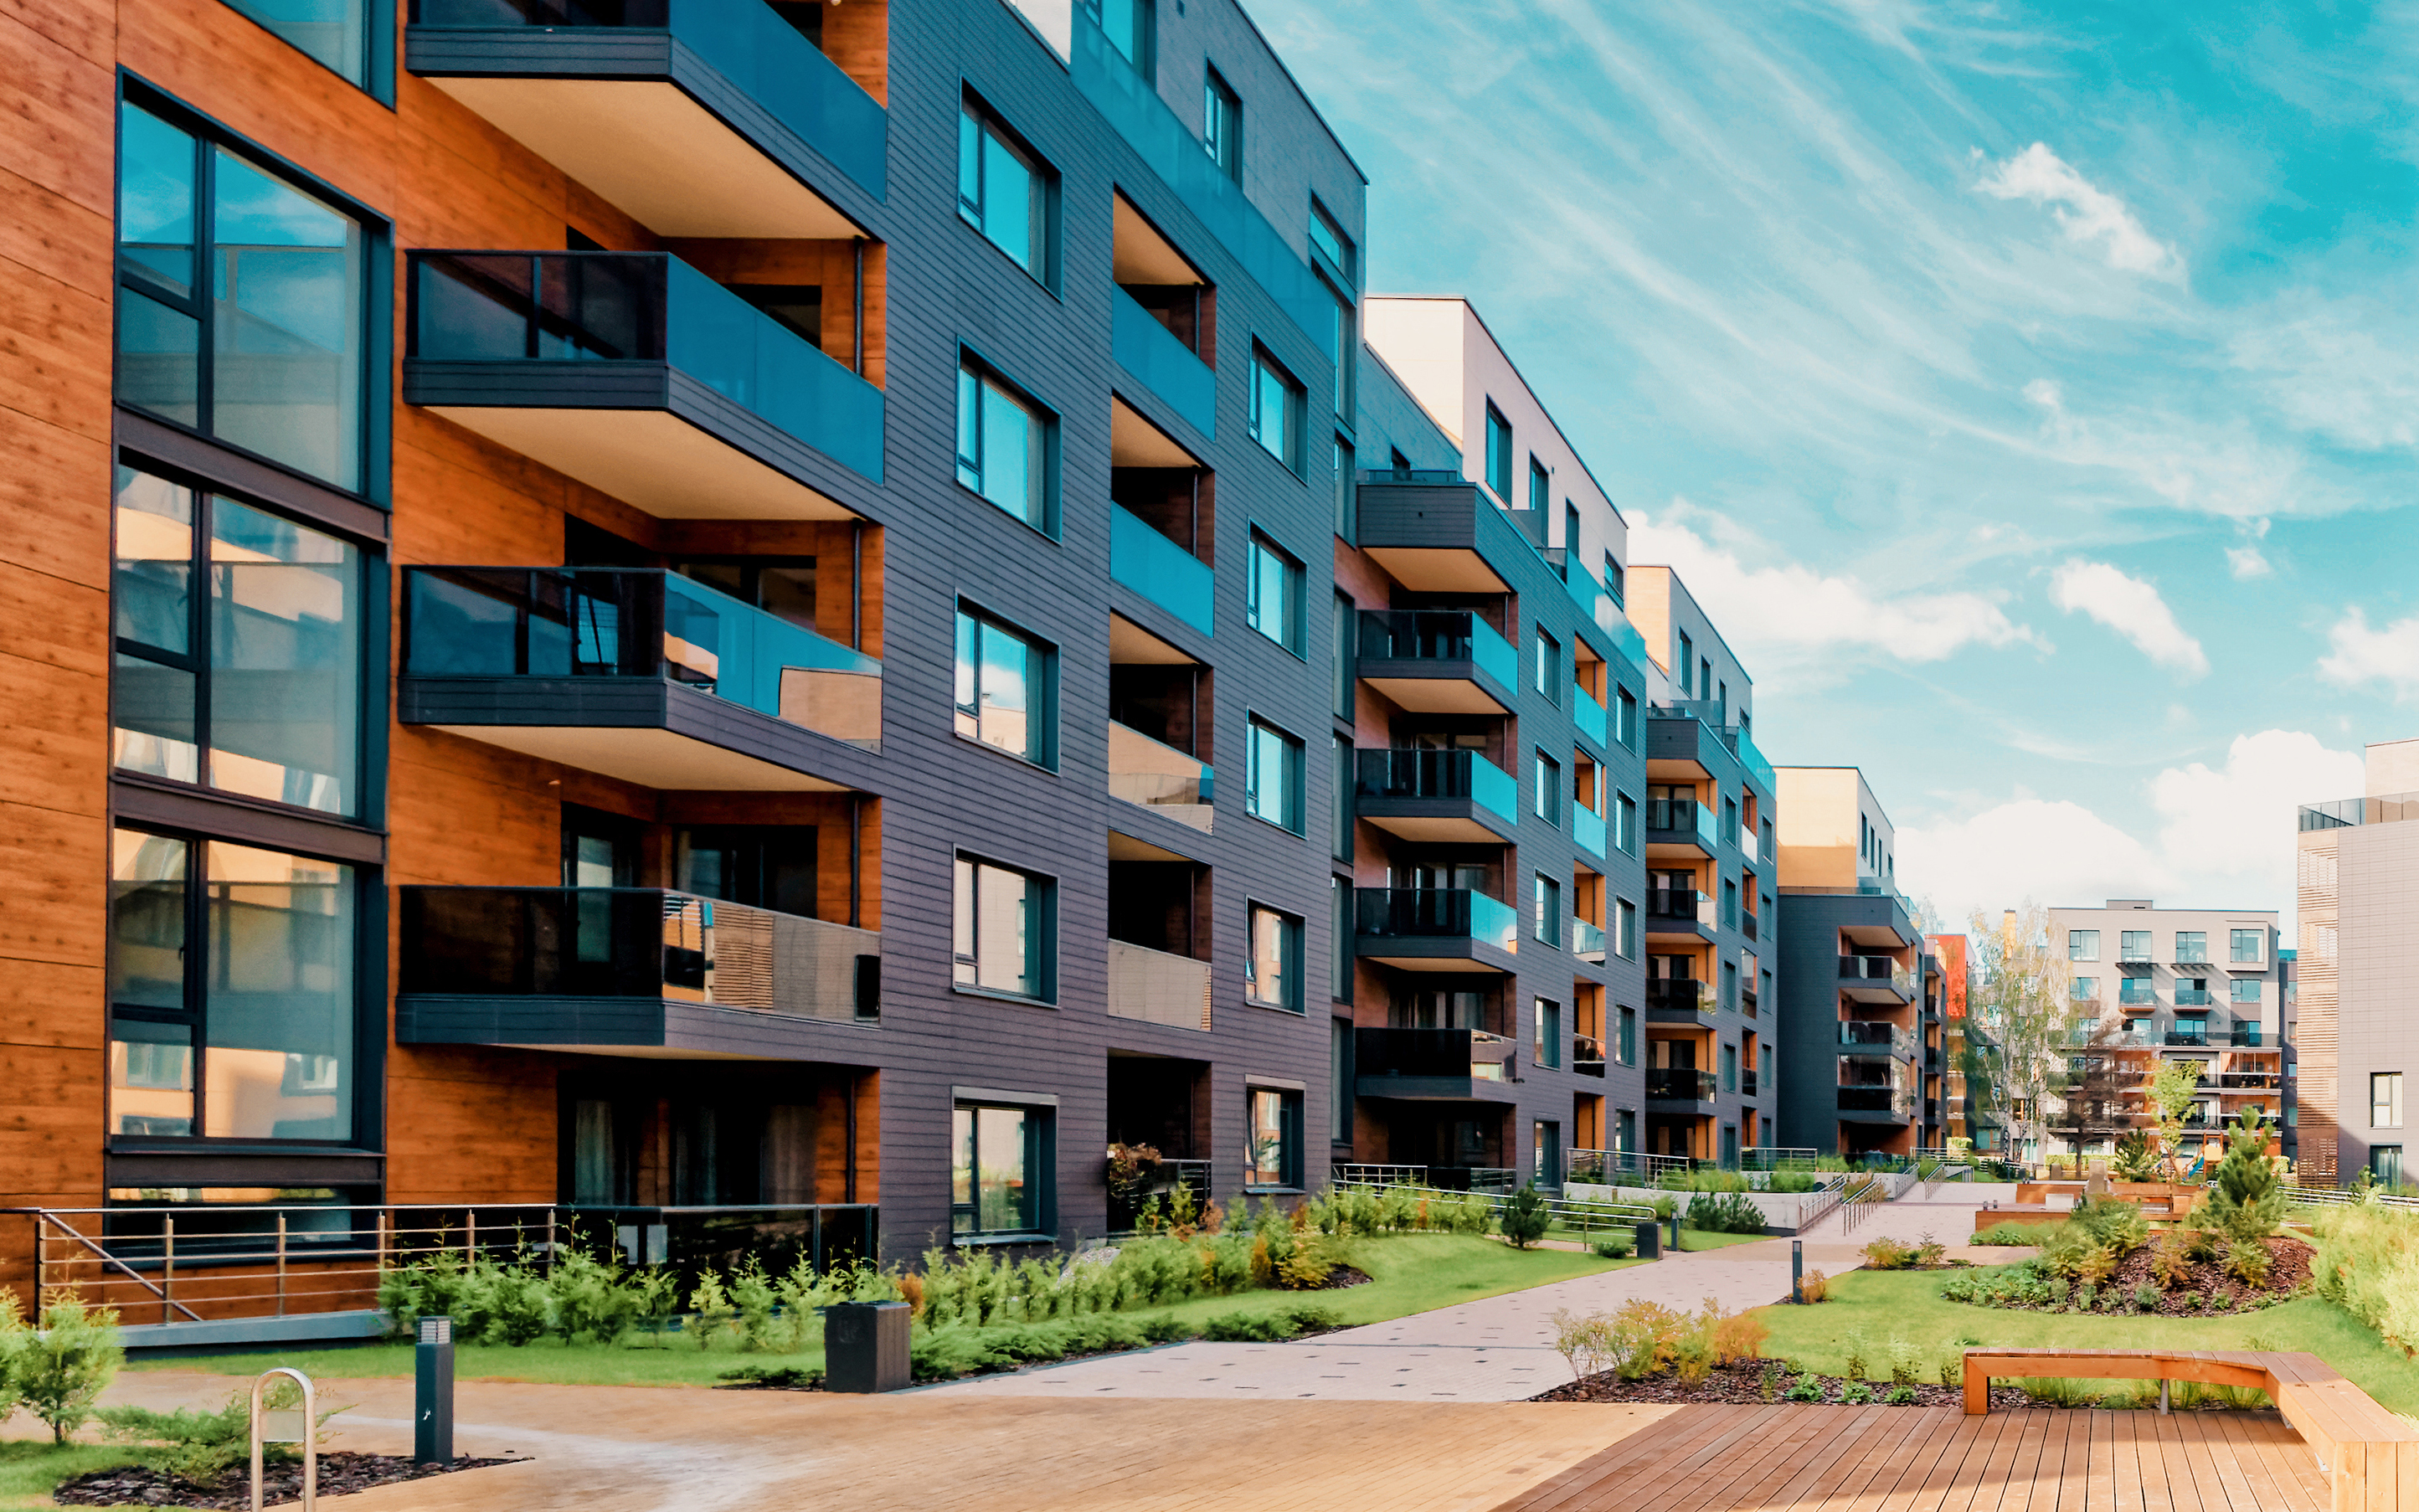 Europe modern complex of residential buildings. And outdoor facilities.